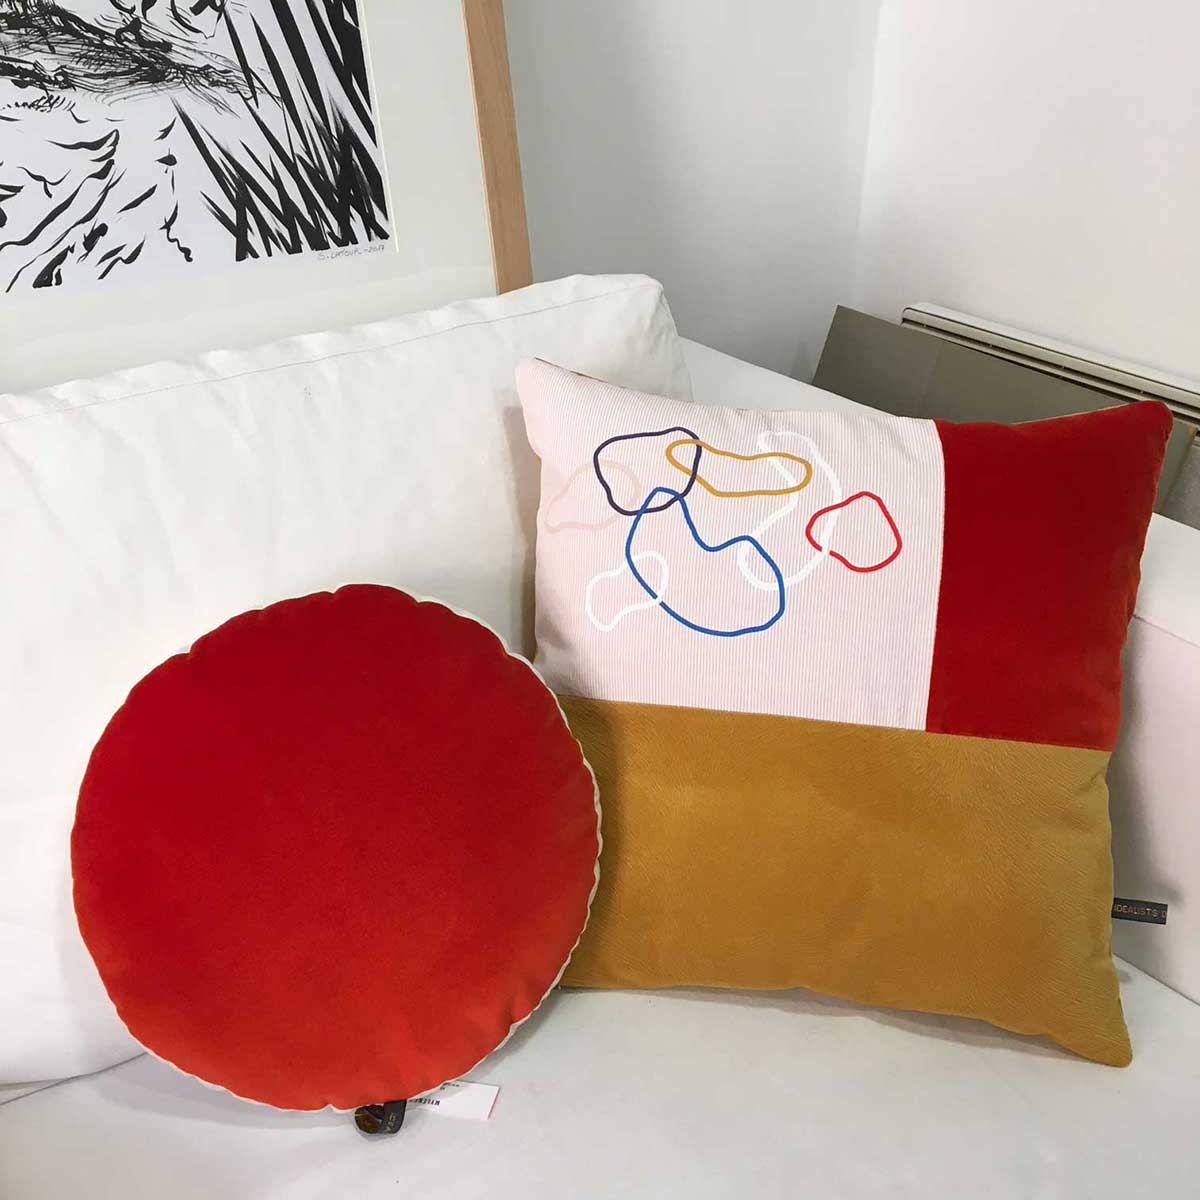 coussin-serigraphie-textile-velours-rond-idealists-dont-stop-toulouse